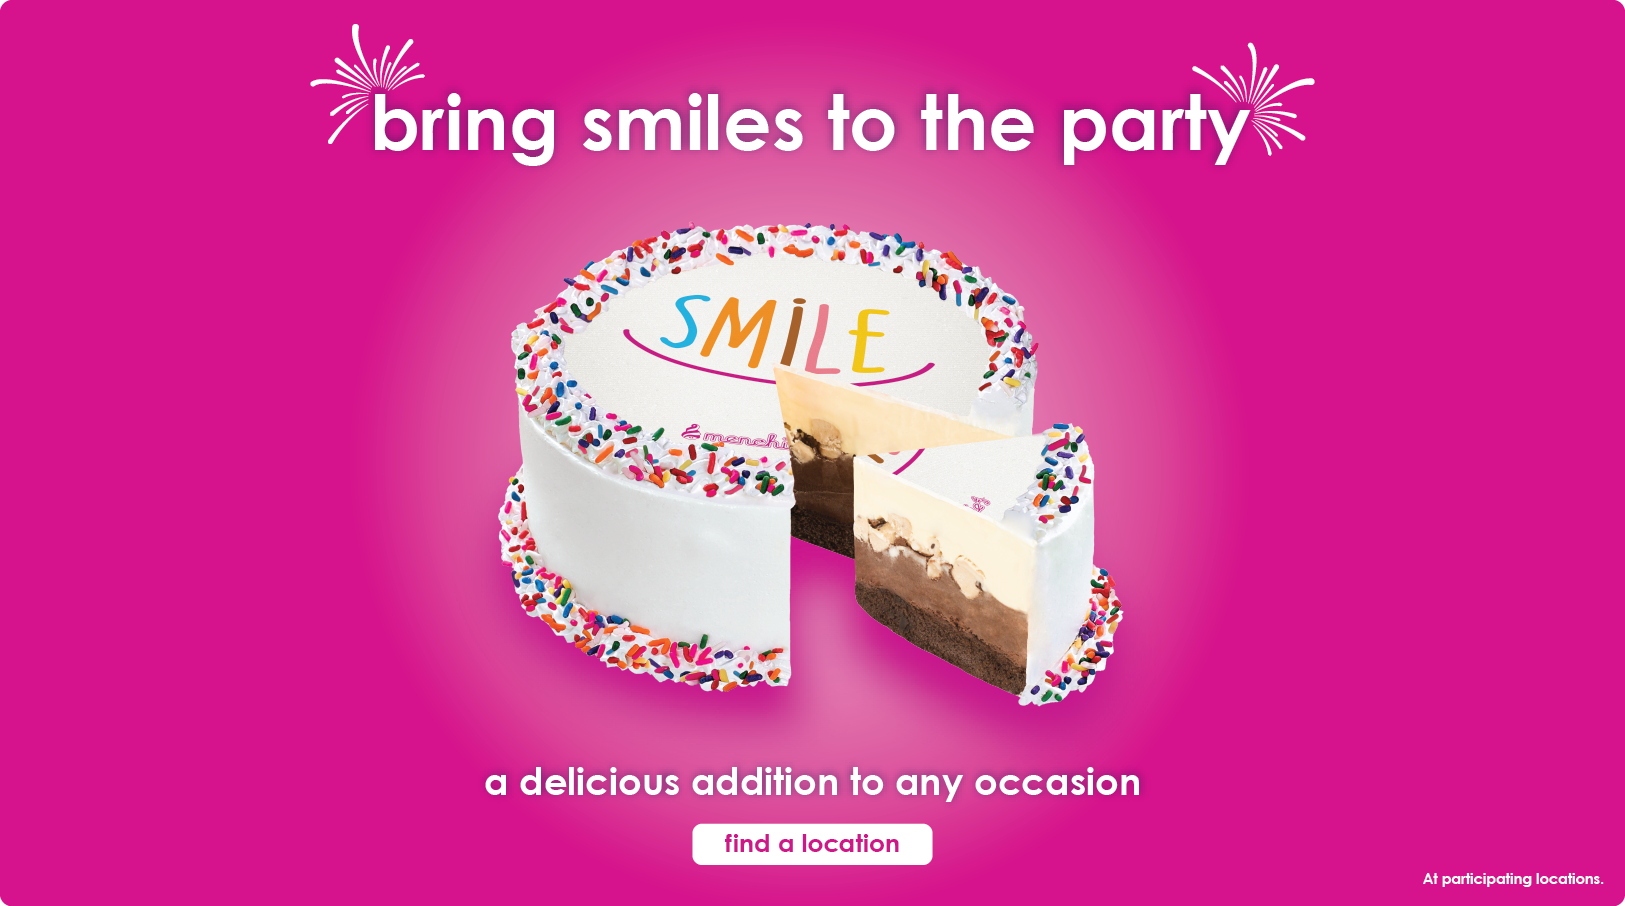 New Froyo Cakes - Bring Smiles to the Party - a delicious addition to any occasion - find a location